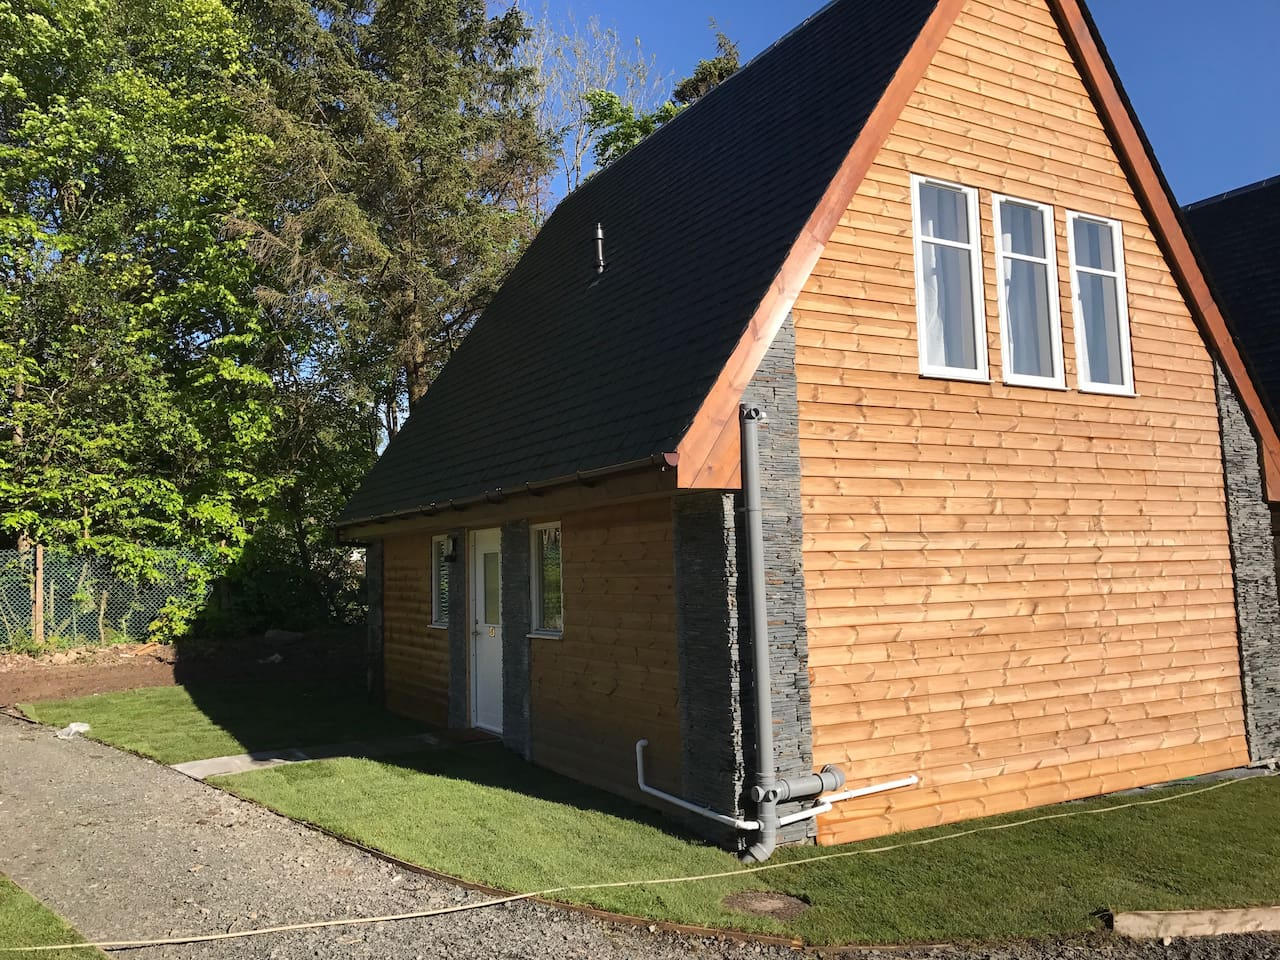 Side view of the chalet. Brand new lodge located right on the banks of Loch Lomond!